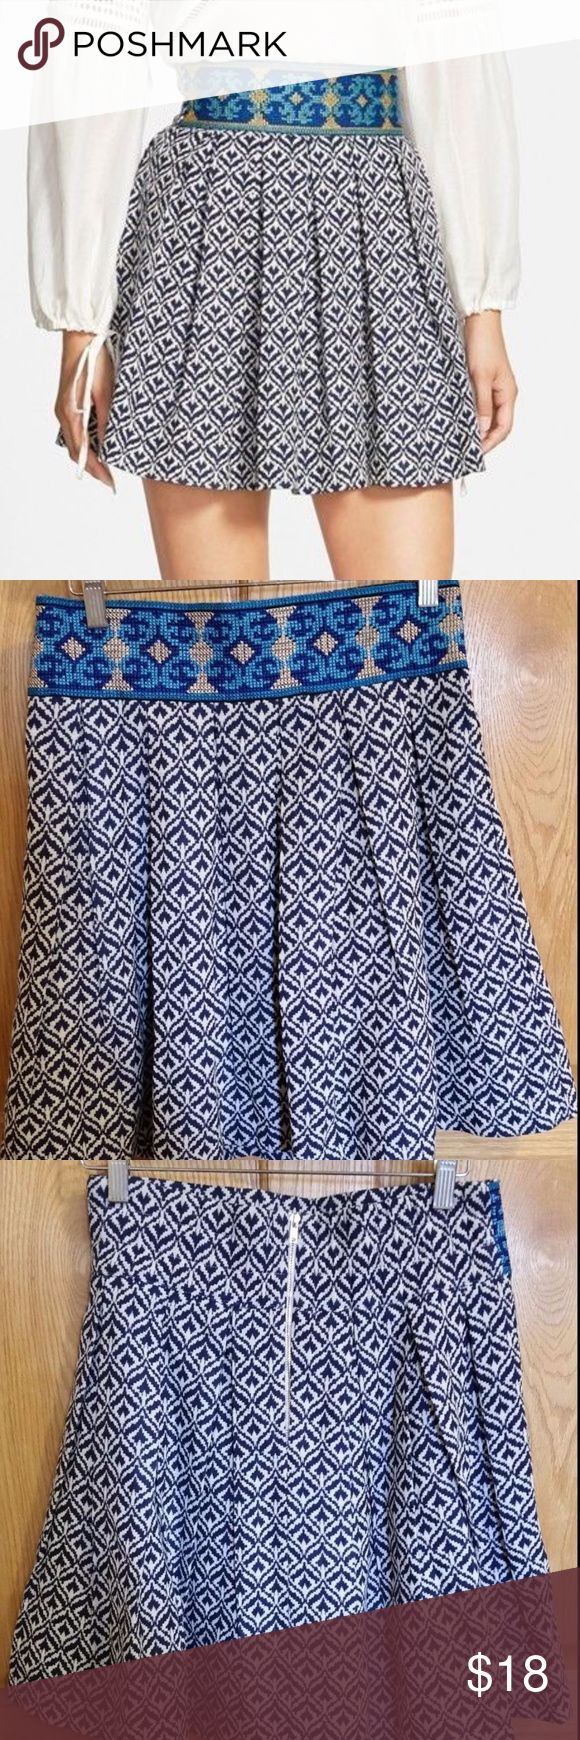 "Sister Jane Pleated Embroidered Skater Mini Skirt Sister Jane Pleated Fit & Flare mini skirt.   Size Large. - 28"" - 29""  Waist (at waist band) - 29"" Hip - 40"" Overall length - 19""   NWOT and never worn. Perfect condition! No defects, snags, stains or pulls.  Contrast folk embroidery at the waistband pleated A-line skirt with a blue tile print. Gold tone metal zipper in back and thick waist band  - No pockes - Fully lined - Thick material - Cotton 15%  polyester 85% Sister Jane Skirts Mini"